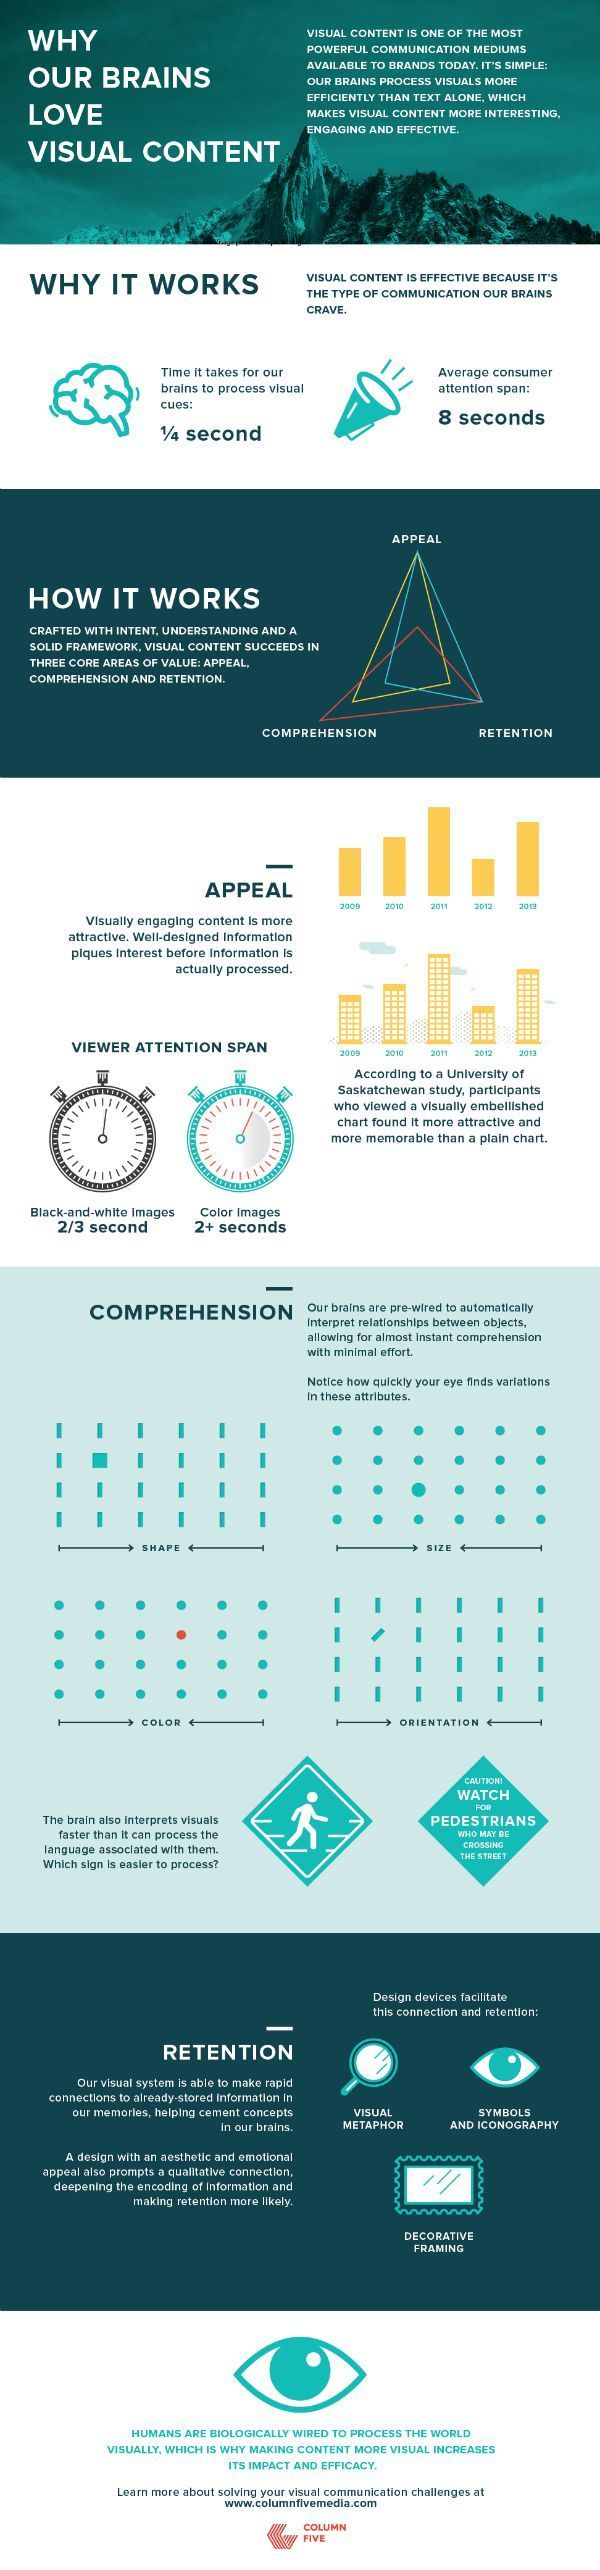 Why Our Brains Love Visual Content - #Infographic